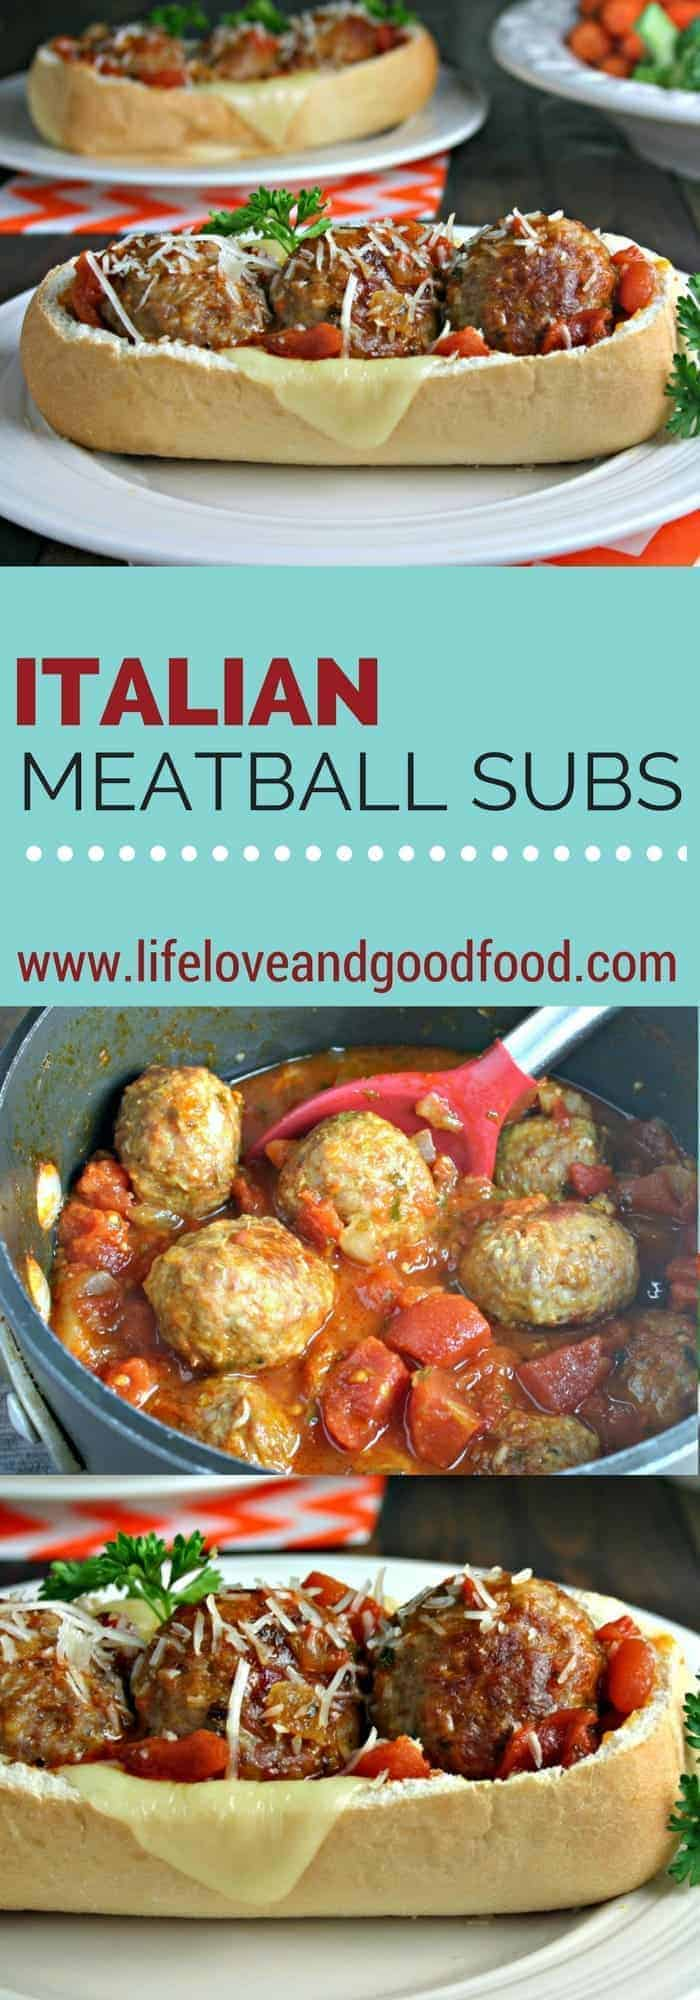 Italian Meatball Subs | Life, Love, and Good Food #Carando #sponsored